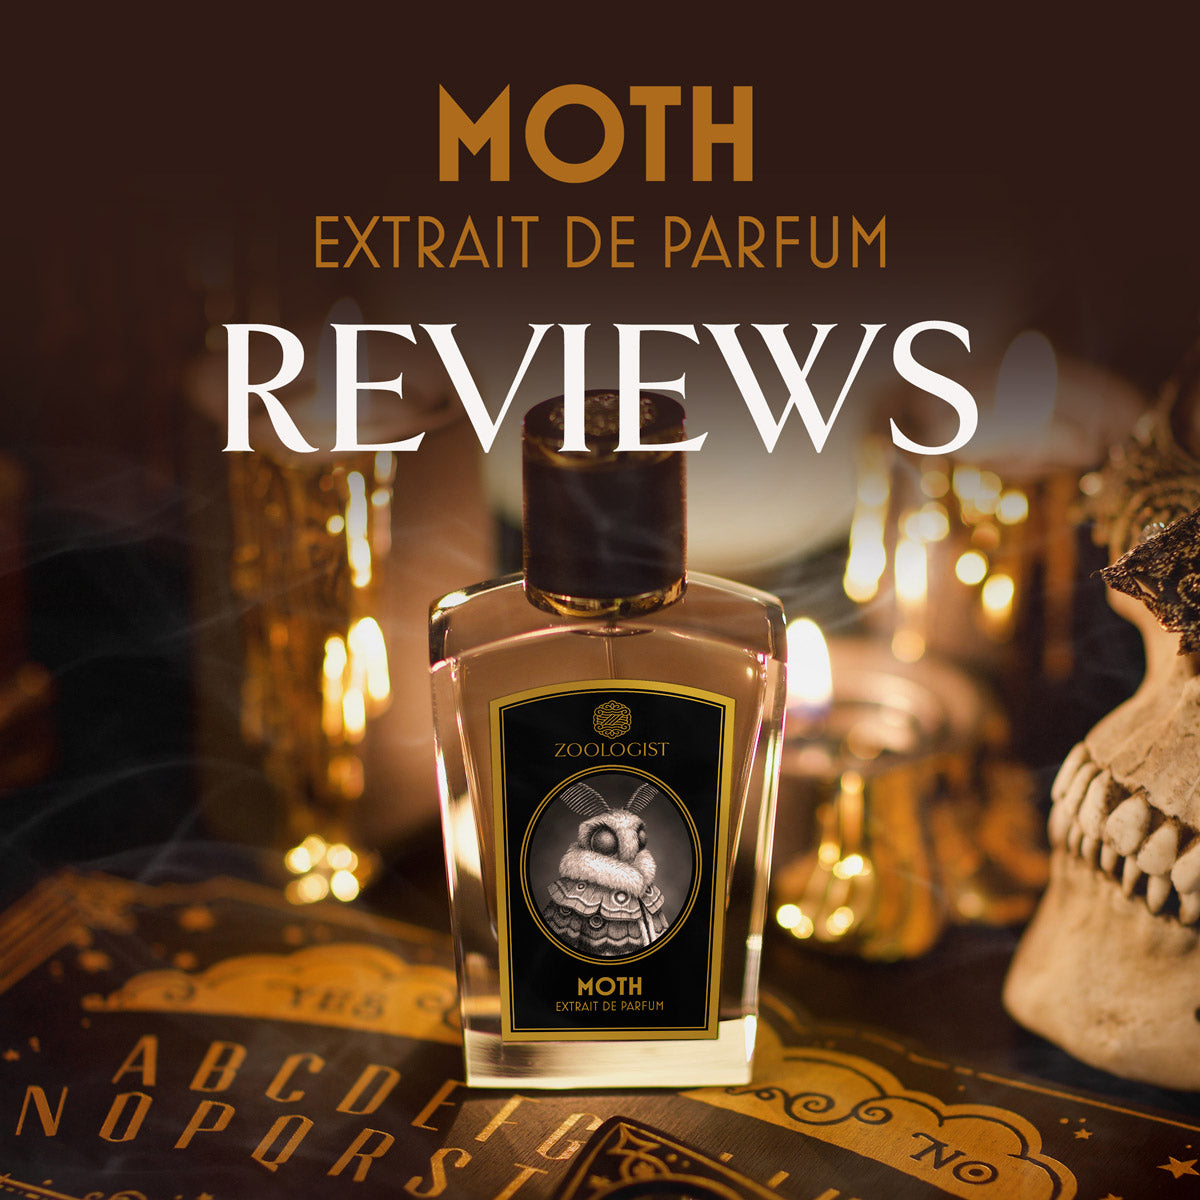 Zoologist Moth Reviews Roundup